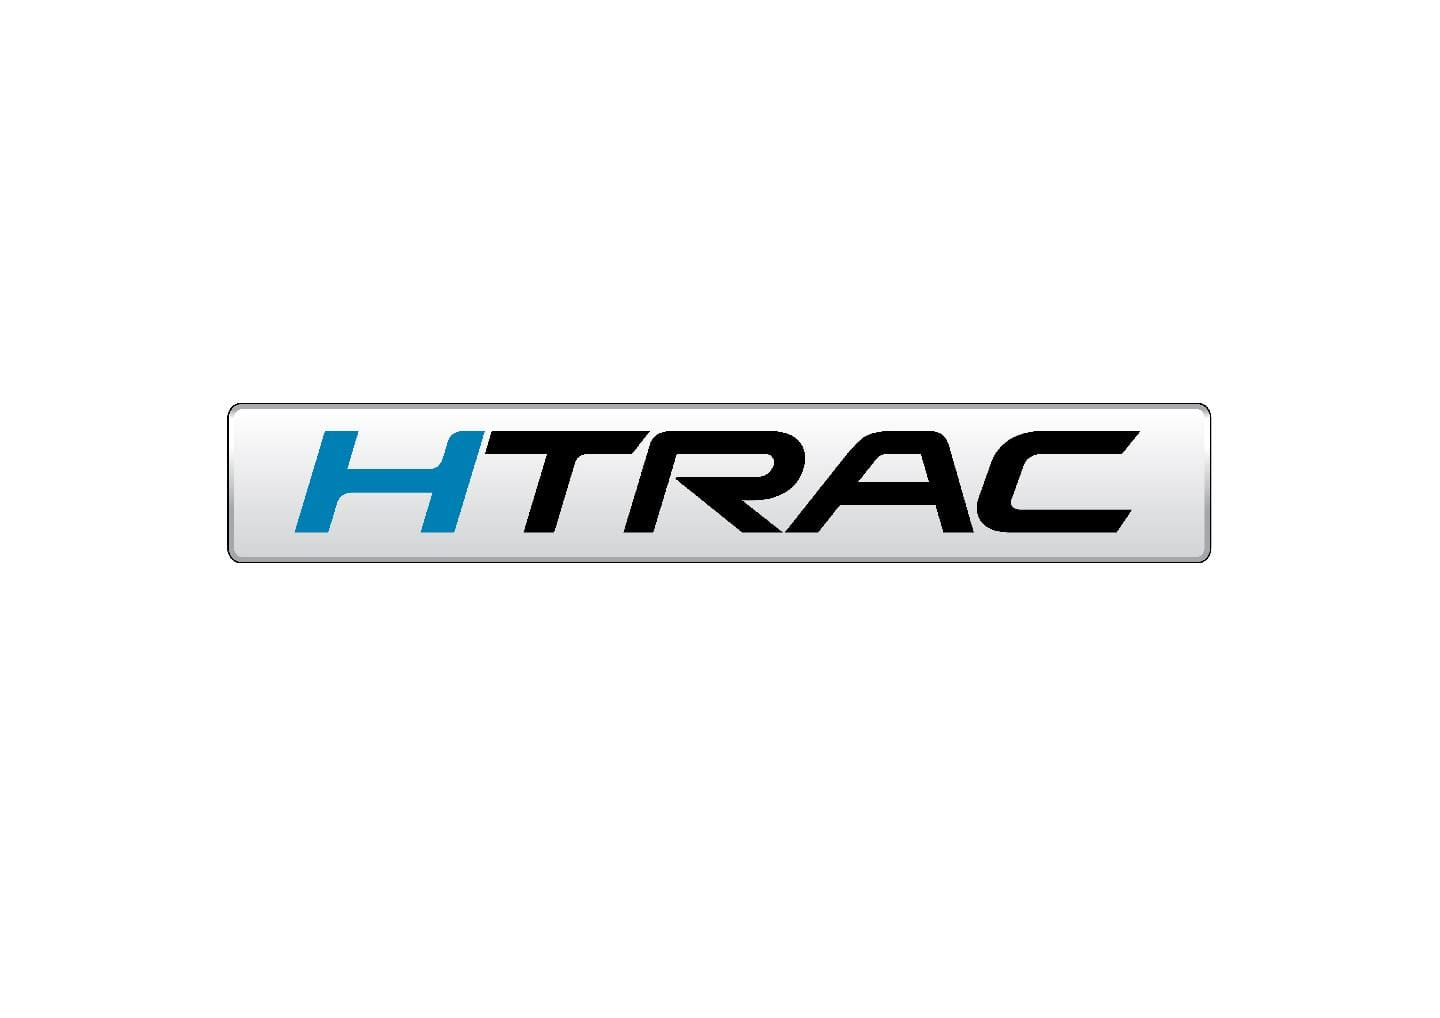 Hyundai Motor Introduces 'HTRAC' AWD System